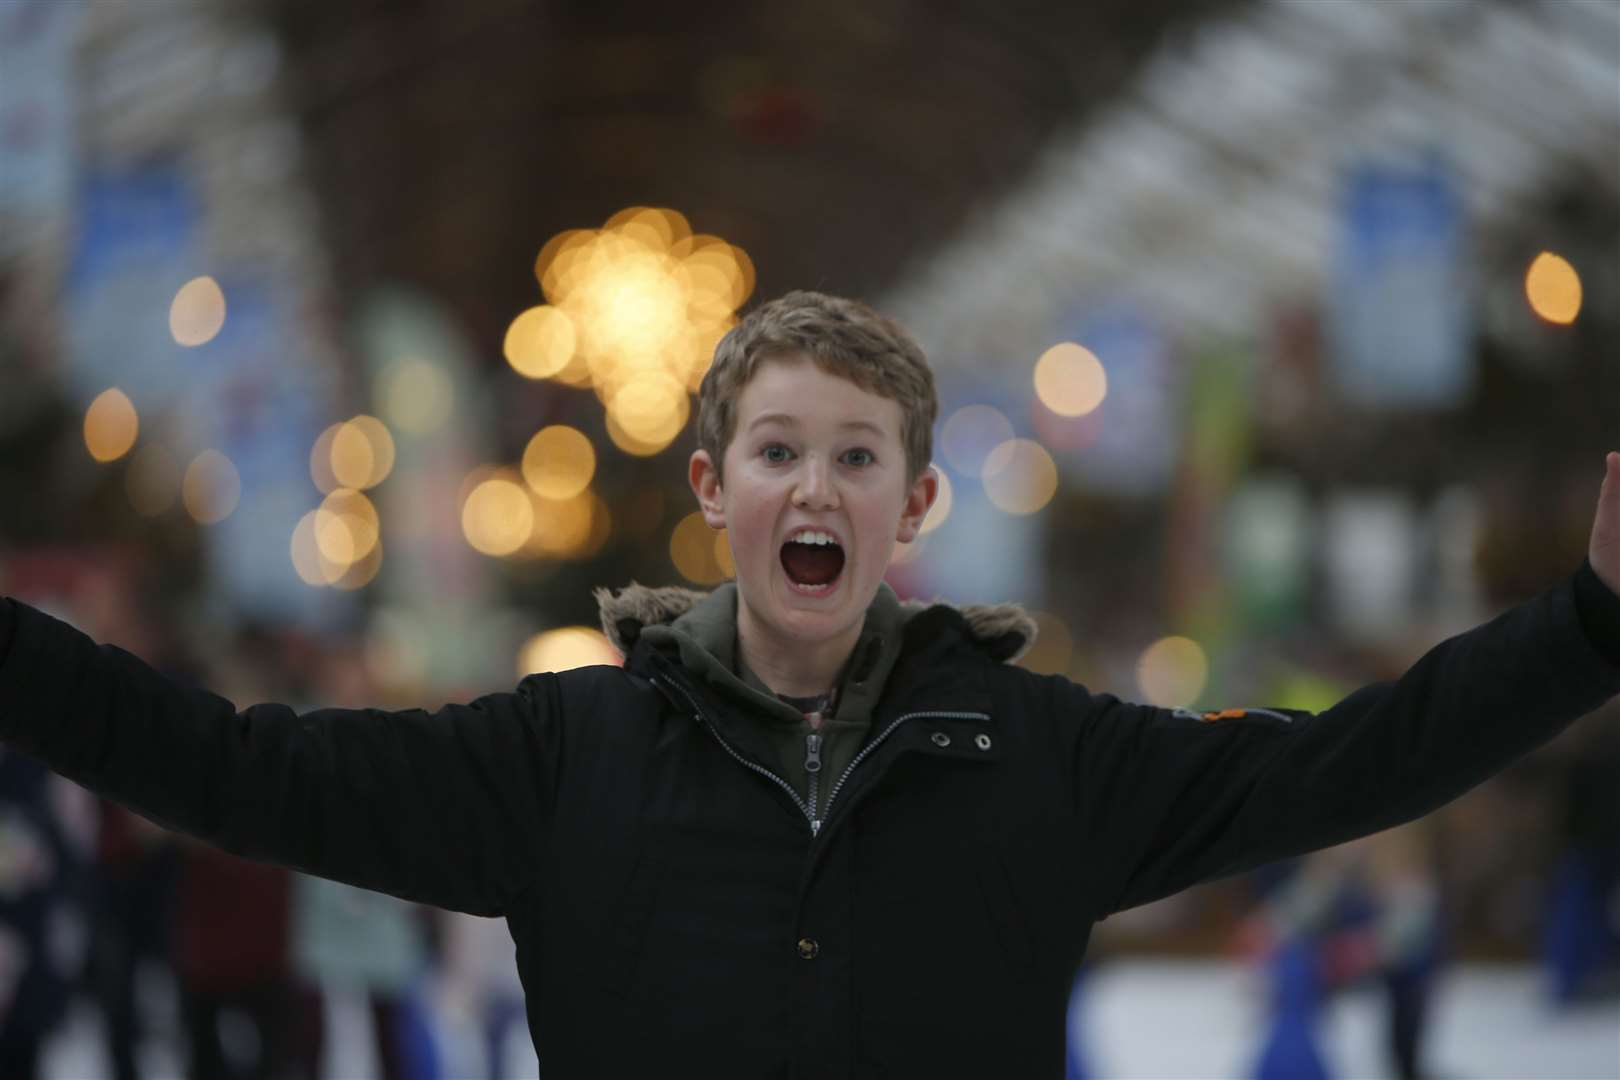 A skater during last year's event Picture: Andy Jones